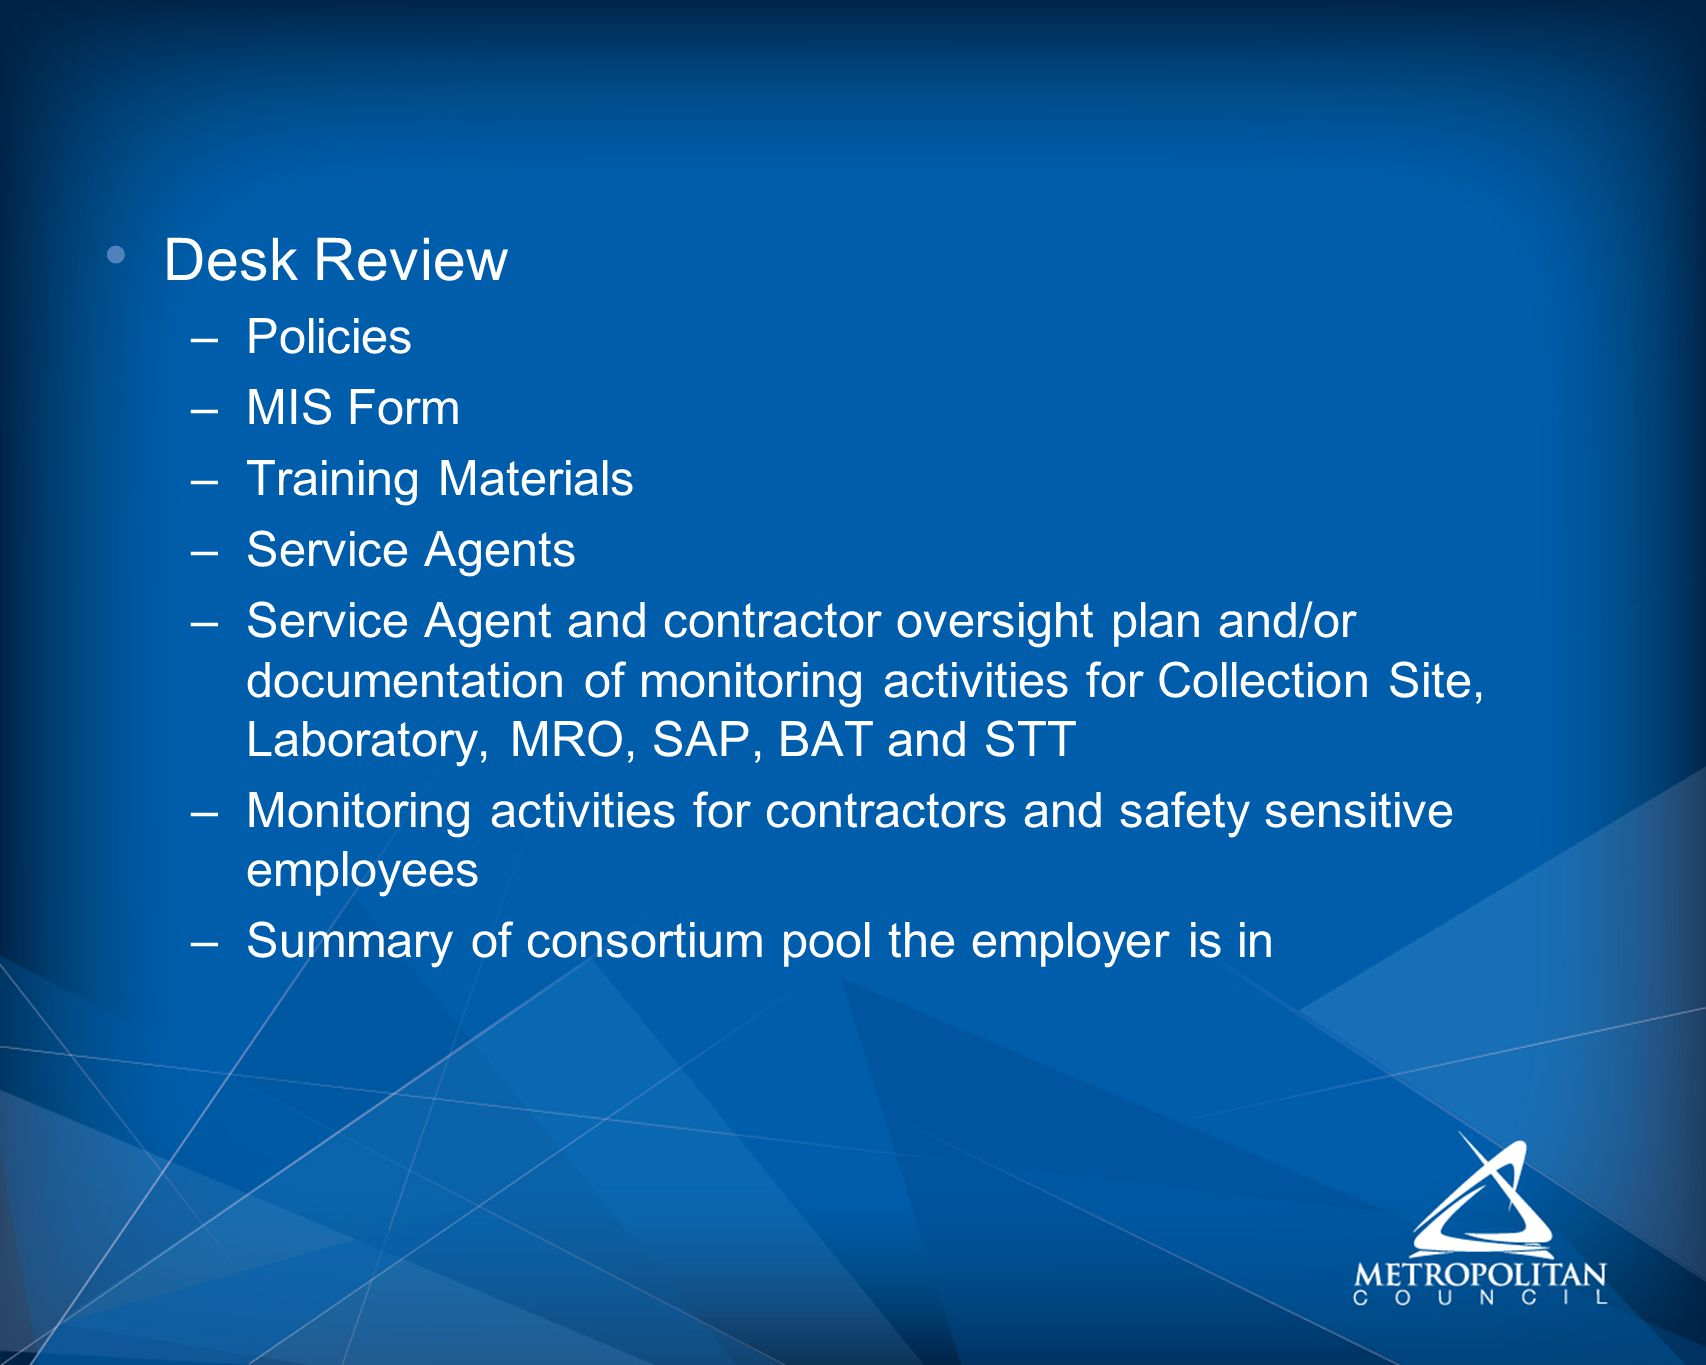 Desk Review Policies MIS Form Training Materials Service Agents